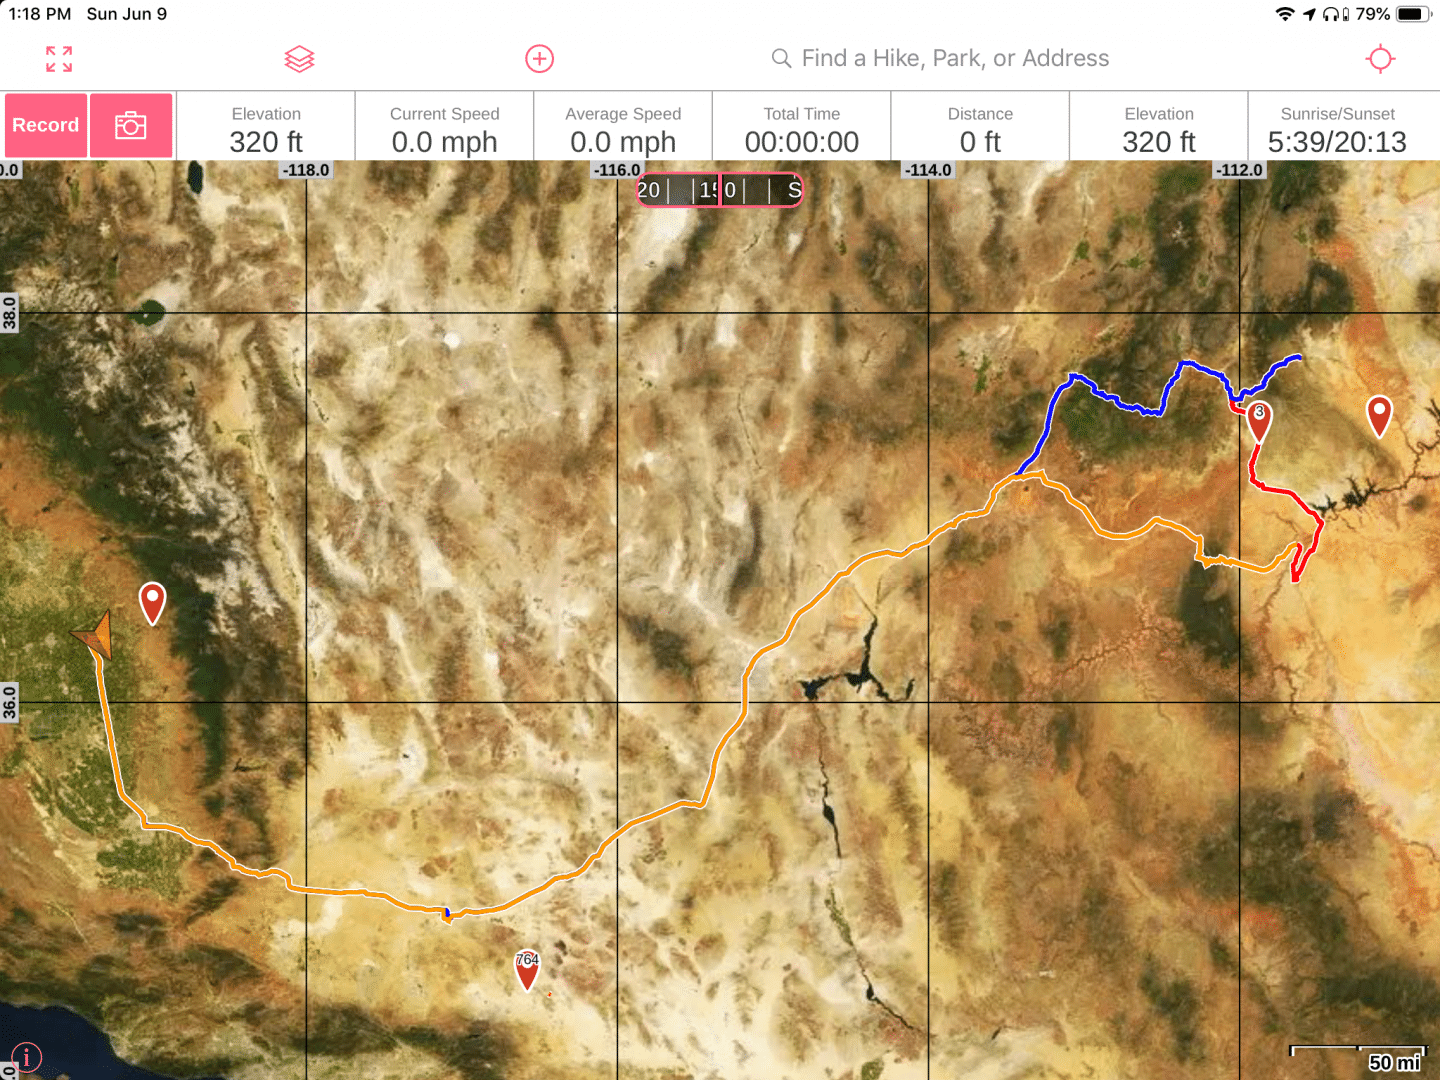 Here's the route I traveled from California to the Colorado Plateau.